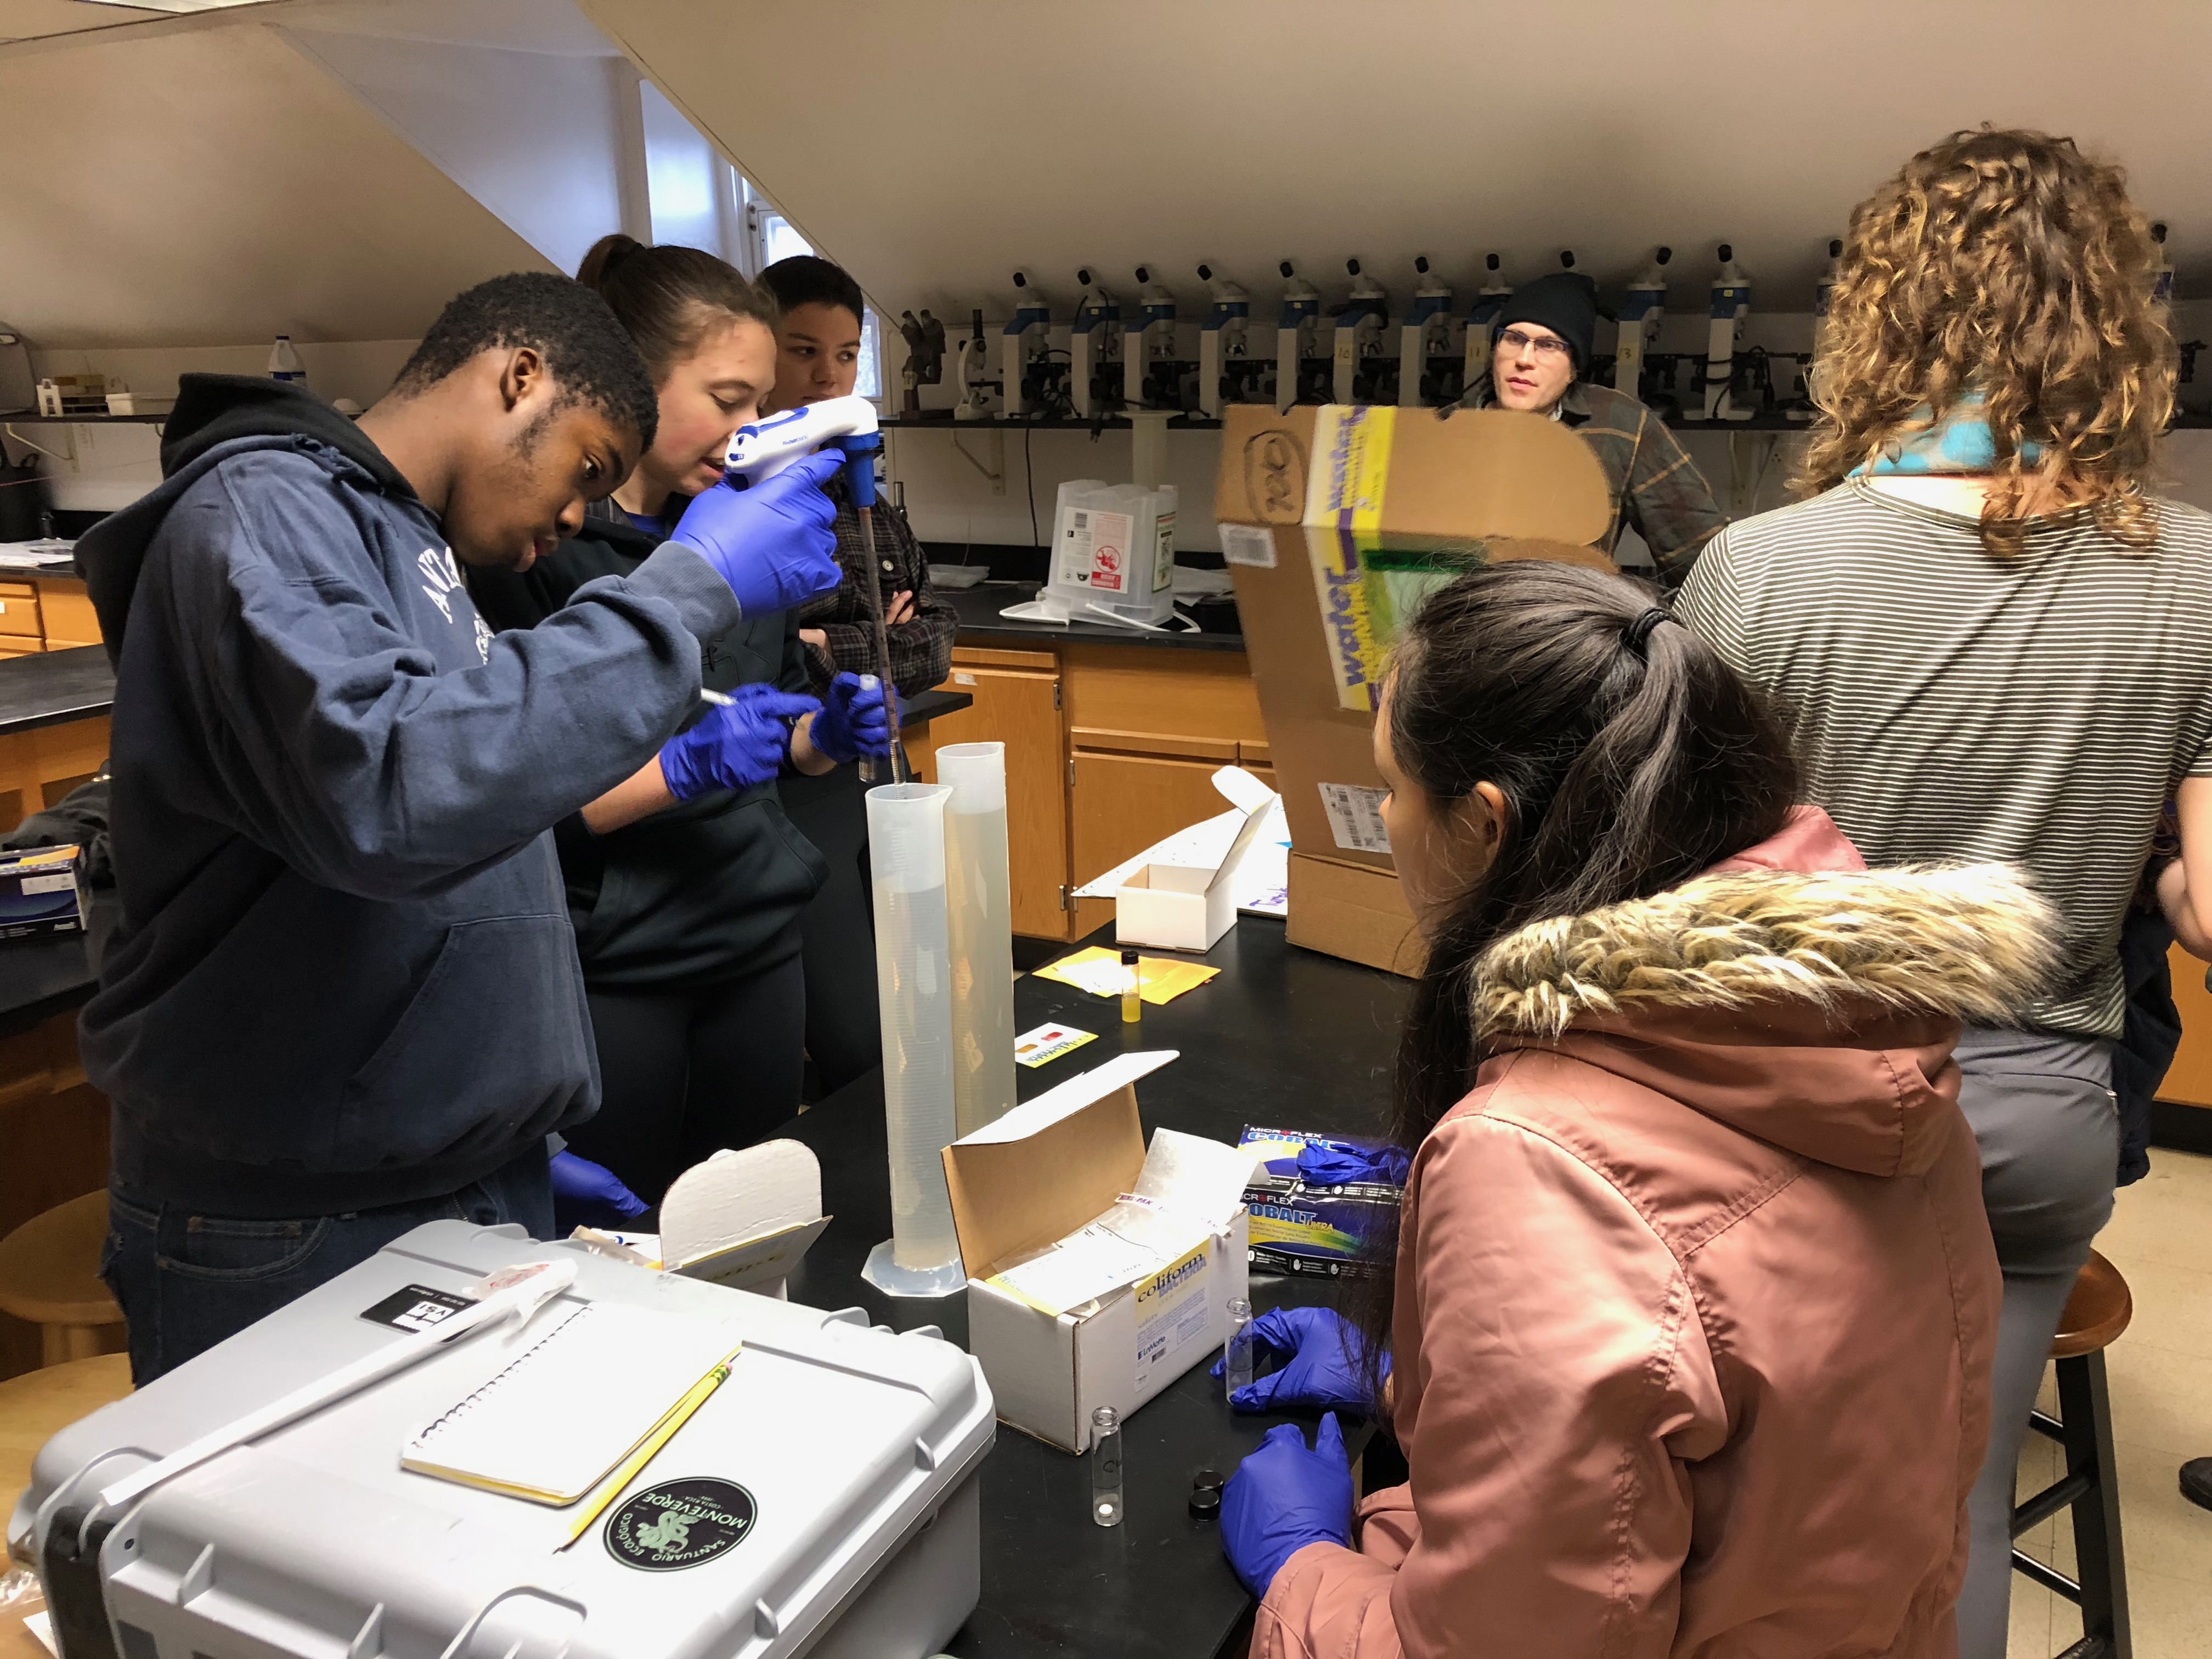 Penn undergrads and PWD Watershed Stewards conducting water quality testing at the Cobbs Creek Environmental Education Center